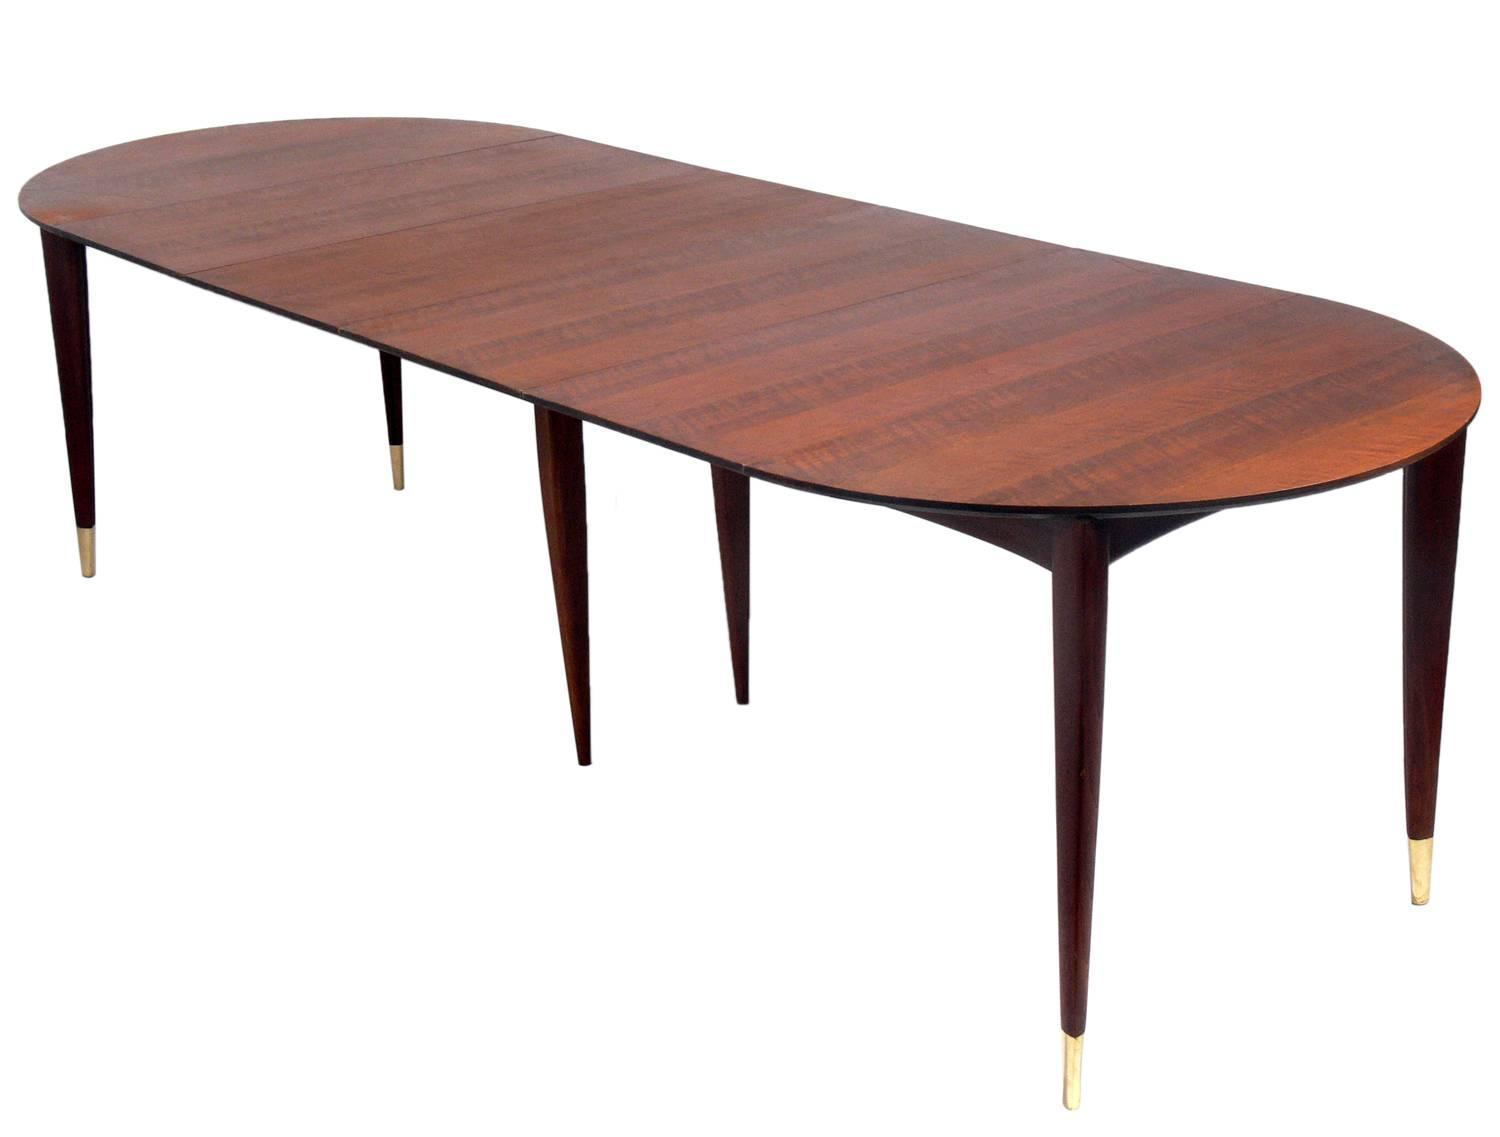 Elegant gio ponti dining table seats four twelve people for Dining room table 4 person